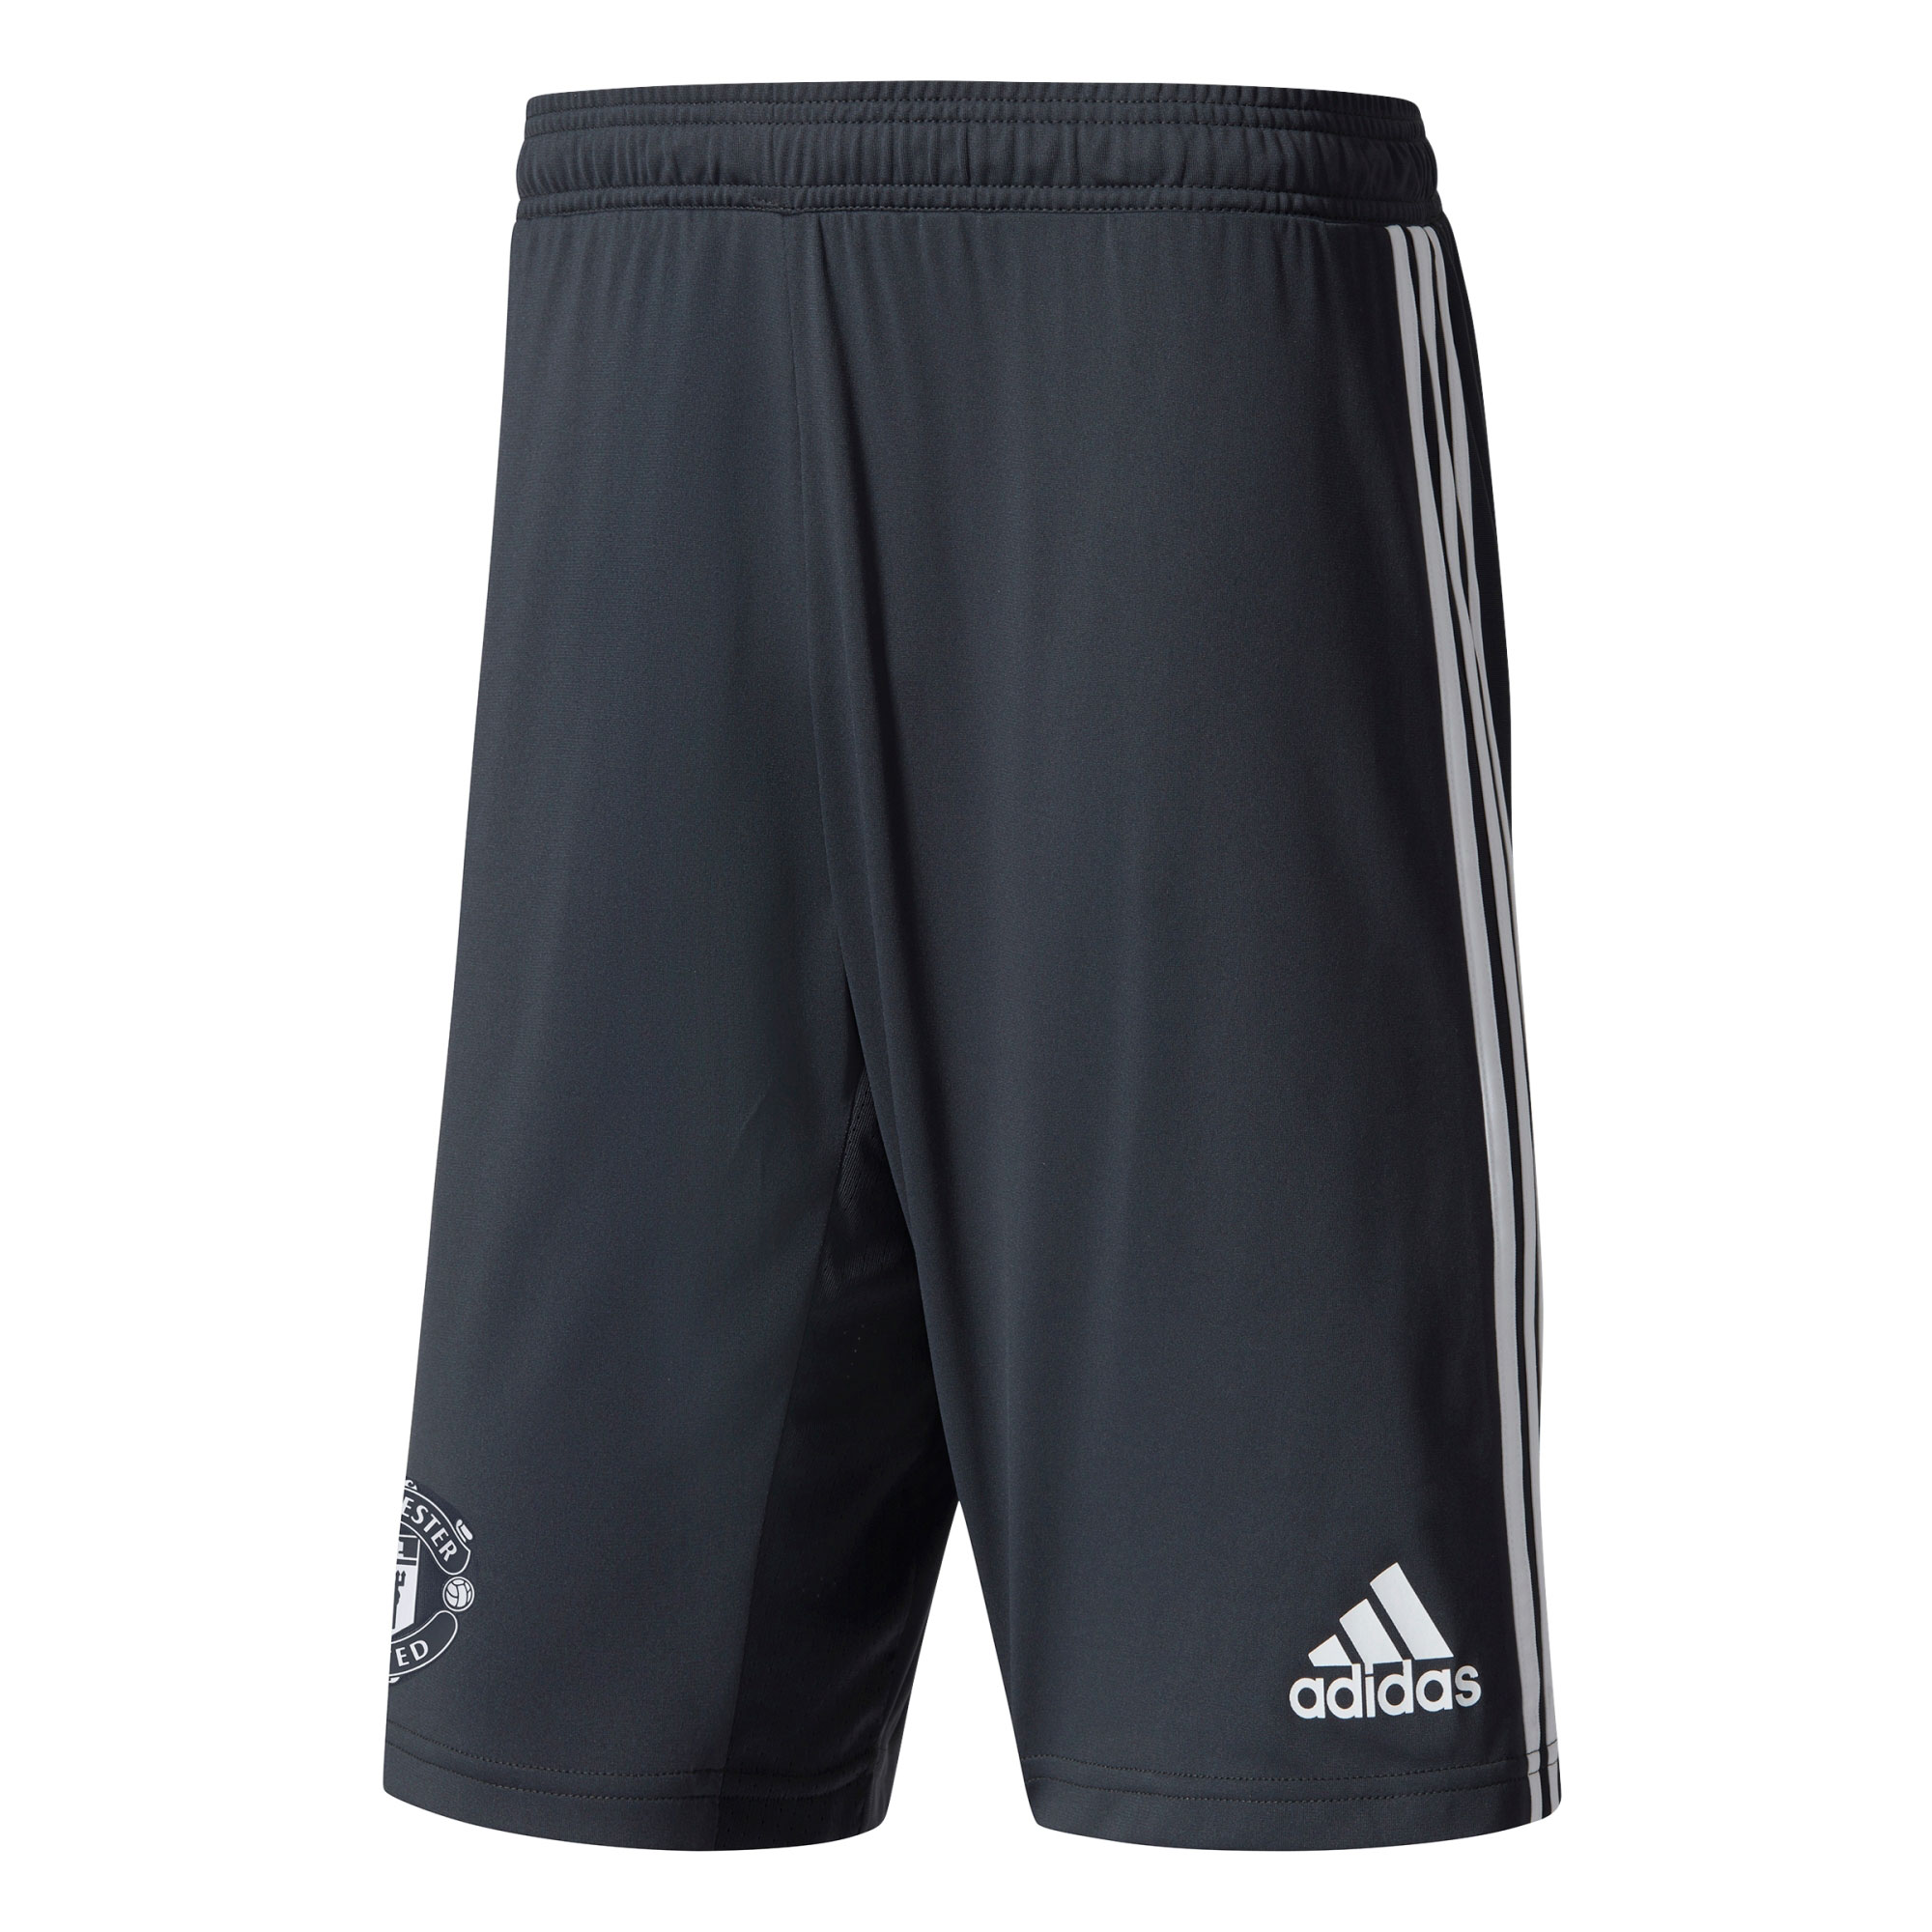 Manchester United Training Short - Dark Grey